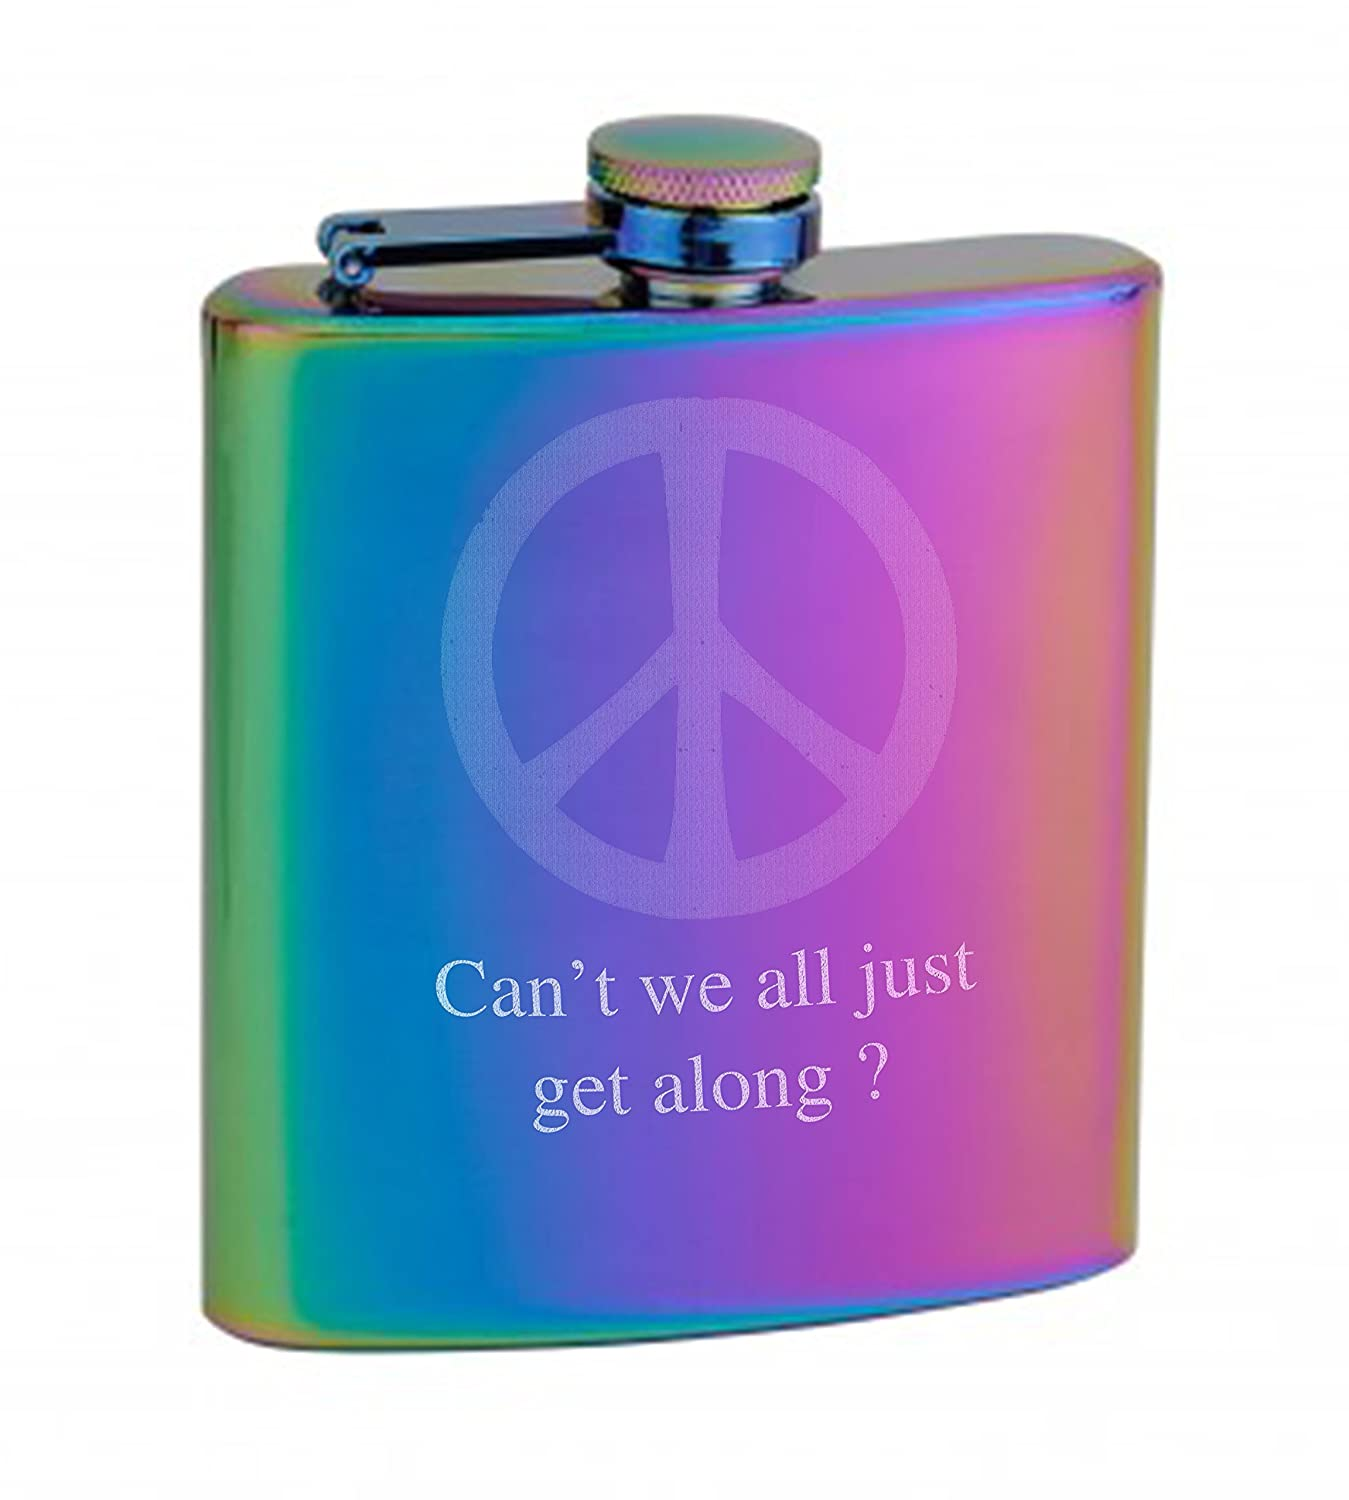 低価格で大人気の Top Shelf Flasks Flasks Rainbow Coloredヒップフラスコ、6オンスwith Personalization Rainbow Personalization B01NAUZO1L, 歌津町:42dcc5bd --- pardeshibandhu.com